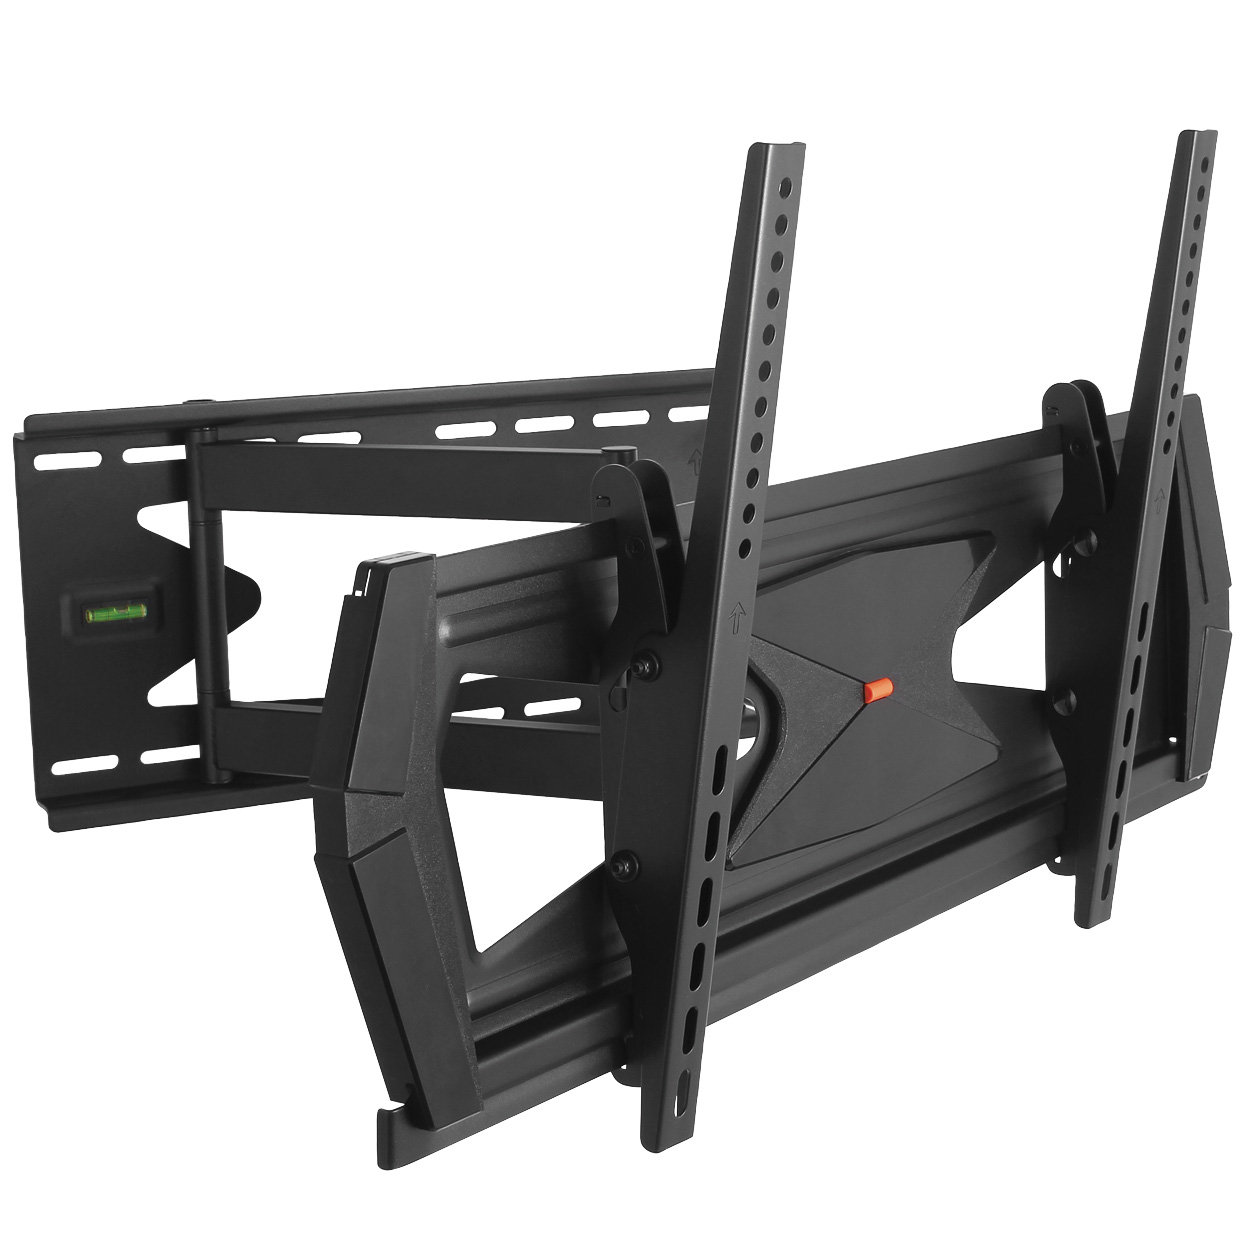 Full Motion Tilt and Swivel TV Wall Mount Bracket for 37-70 inch Screens with Anti-Theft Function (Max 88lbs)